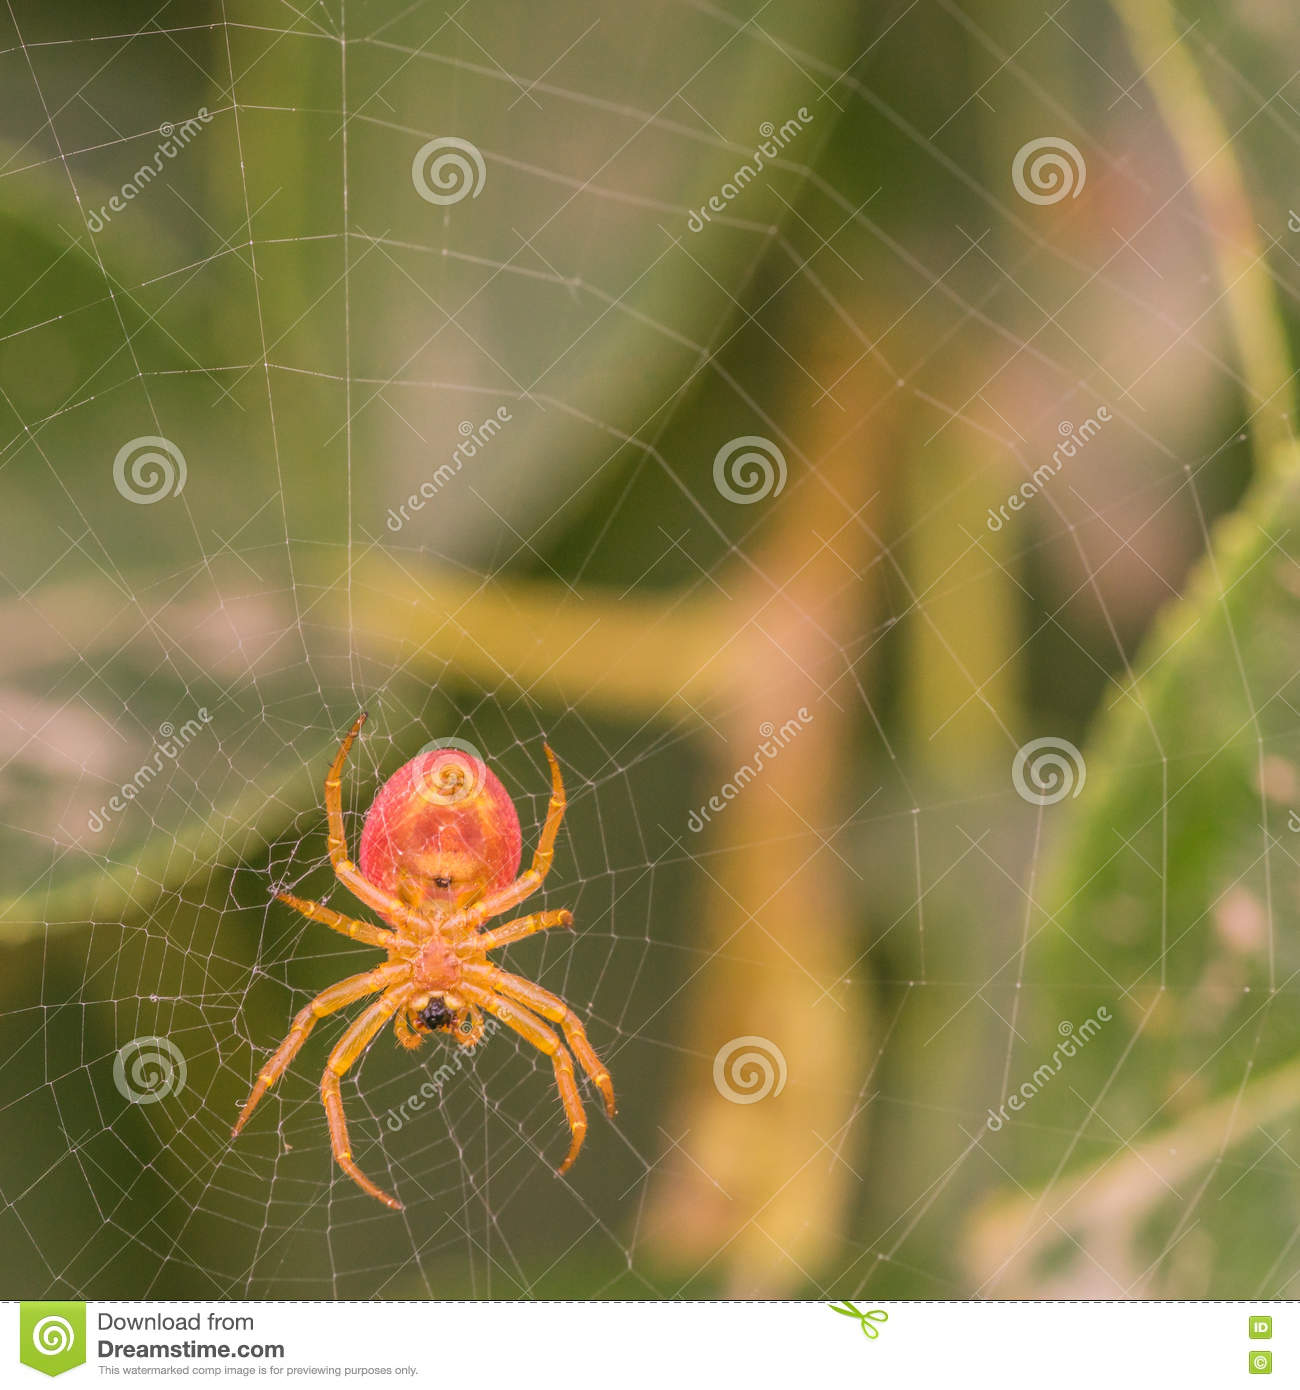 Under View of a Spider